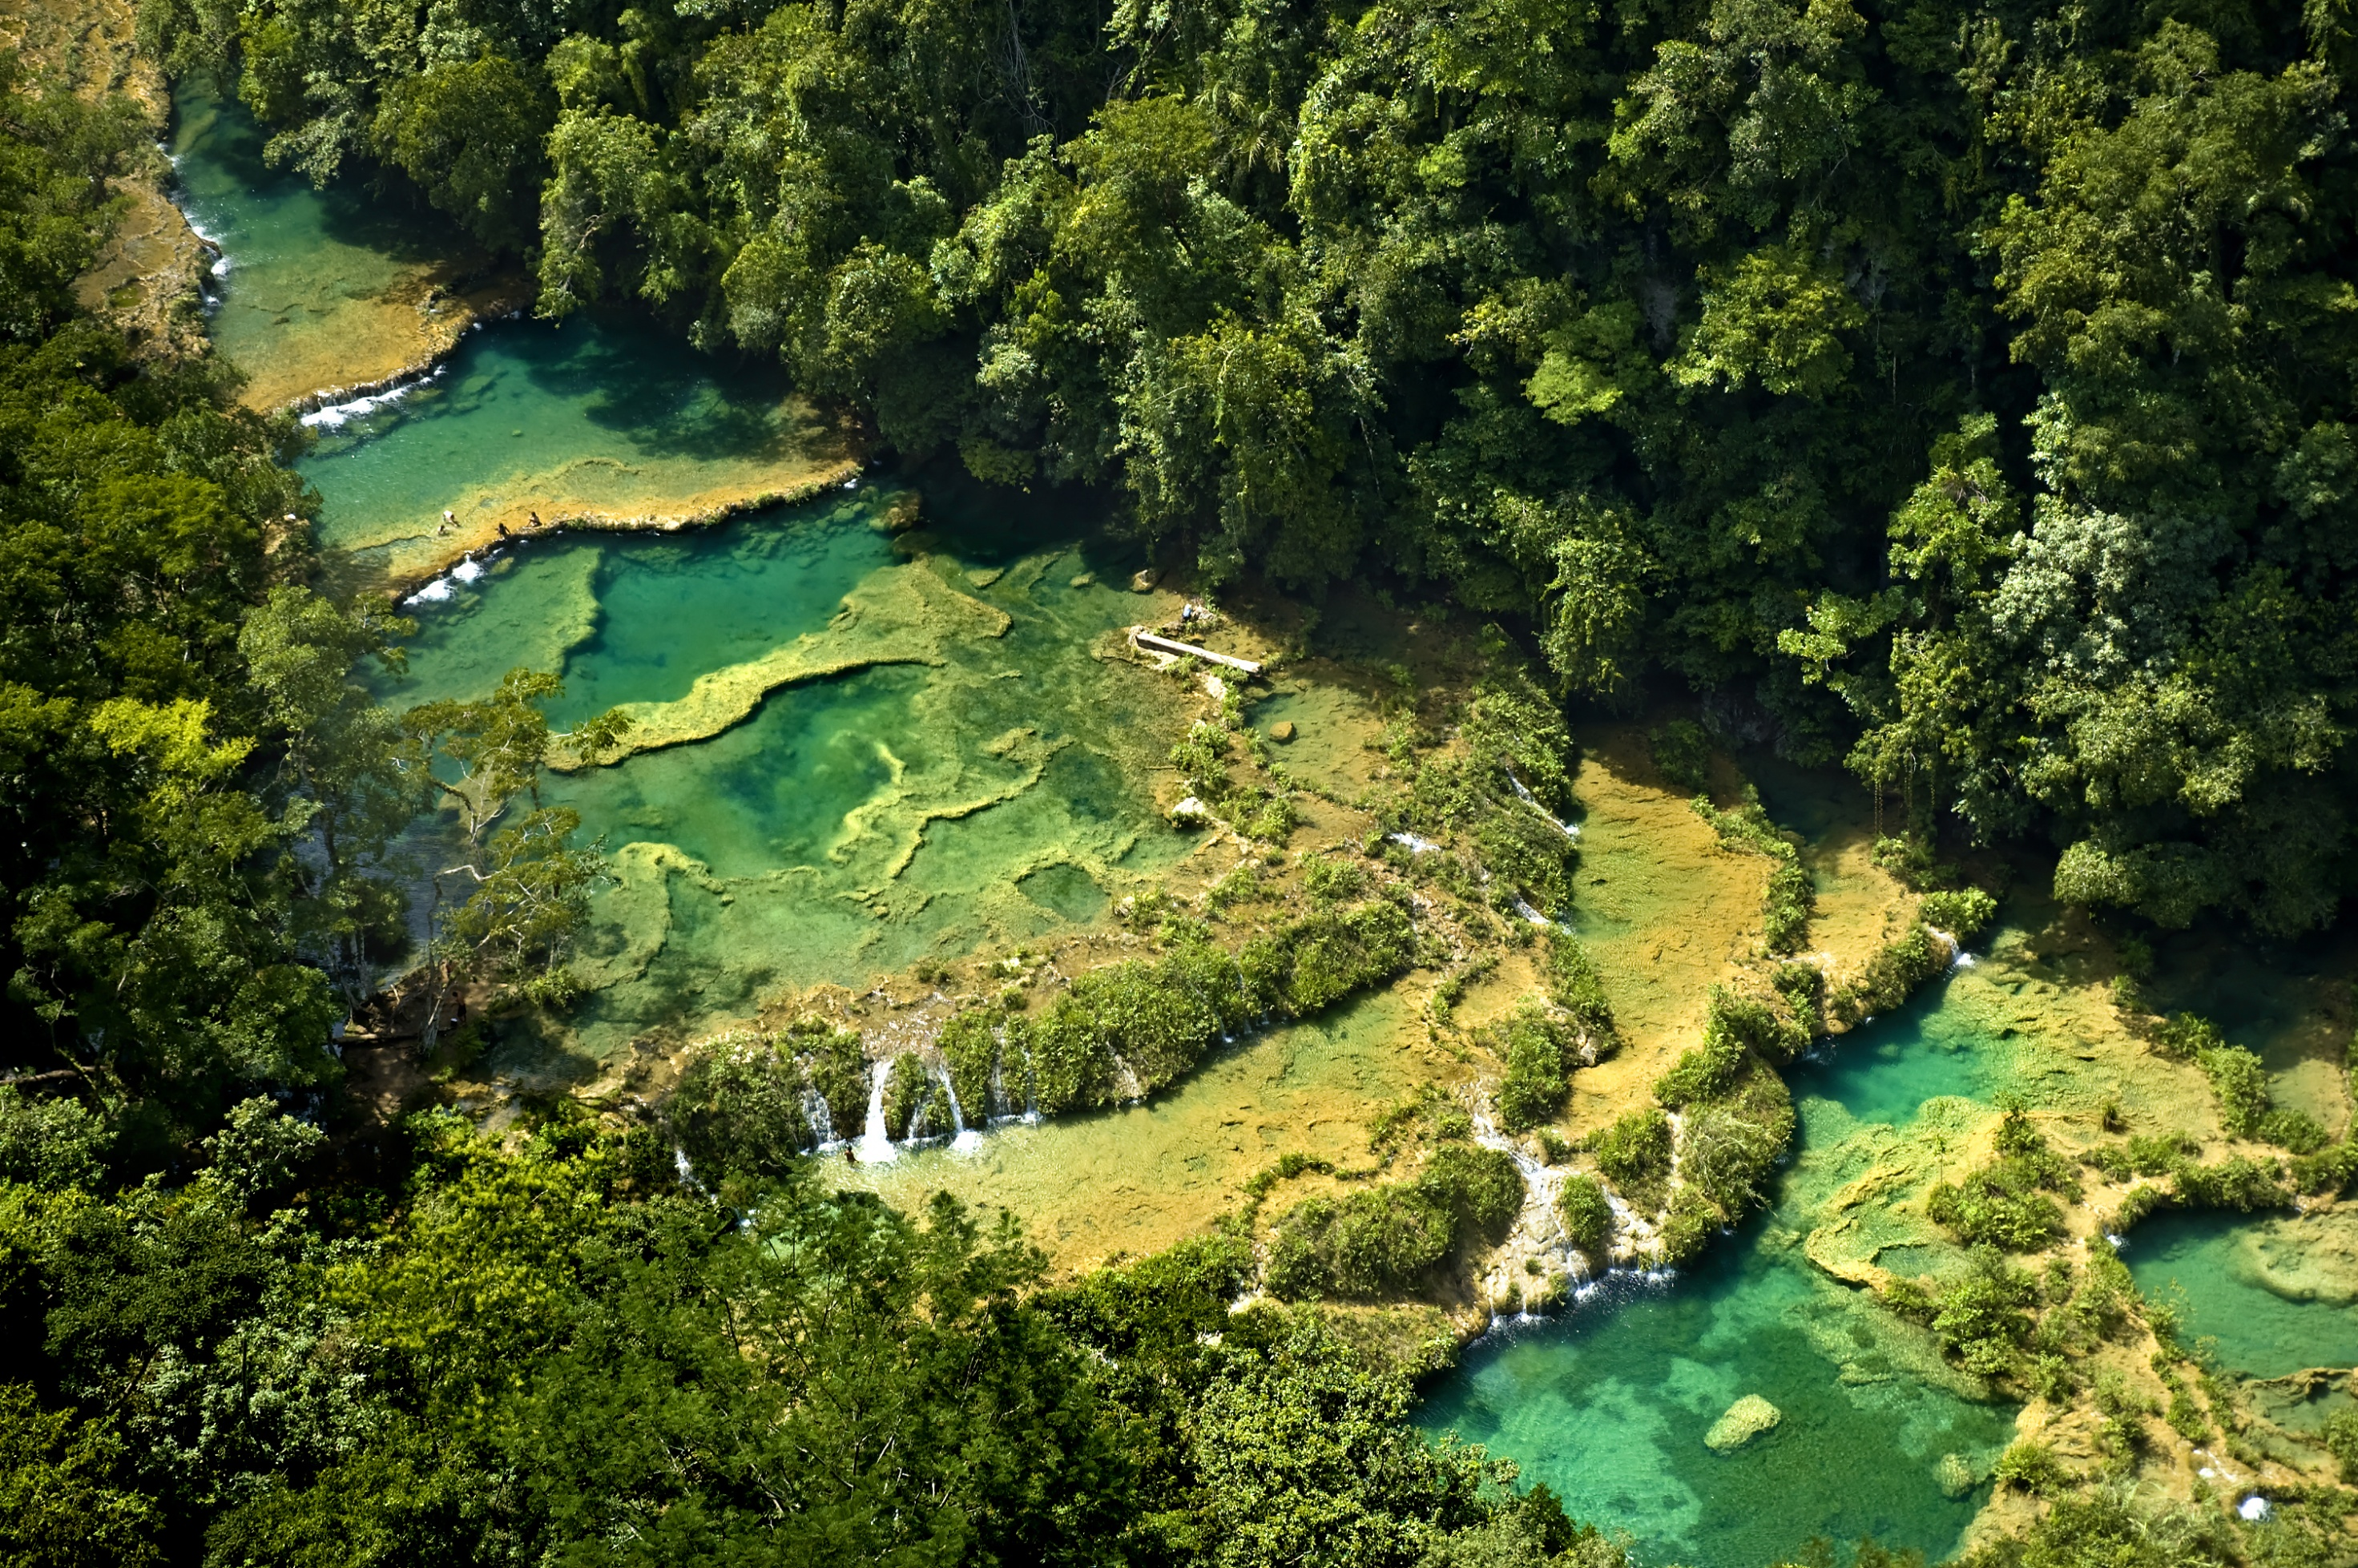 Nom : Semuc Champey PVT Guatemala.jpg